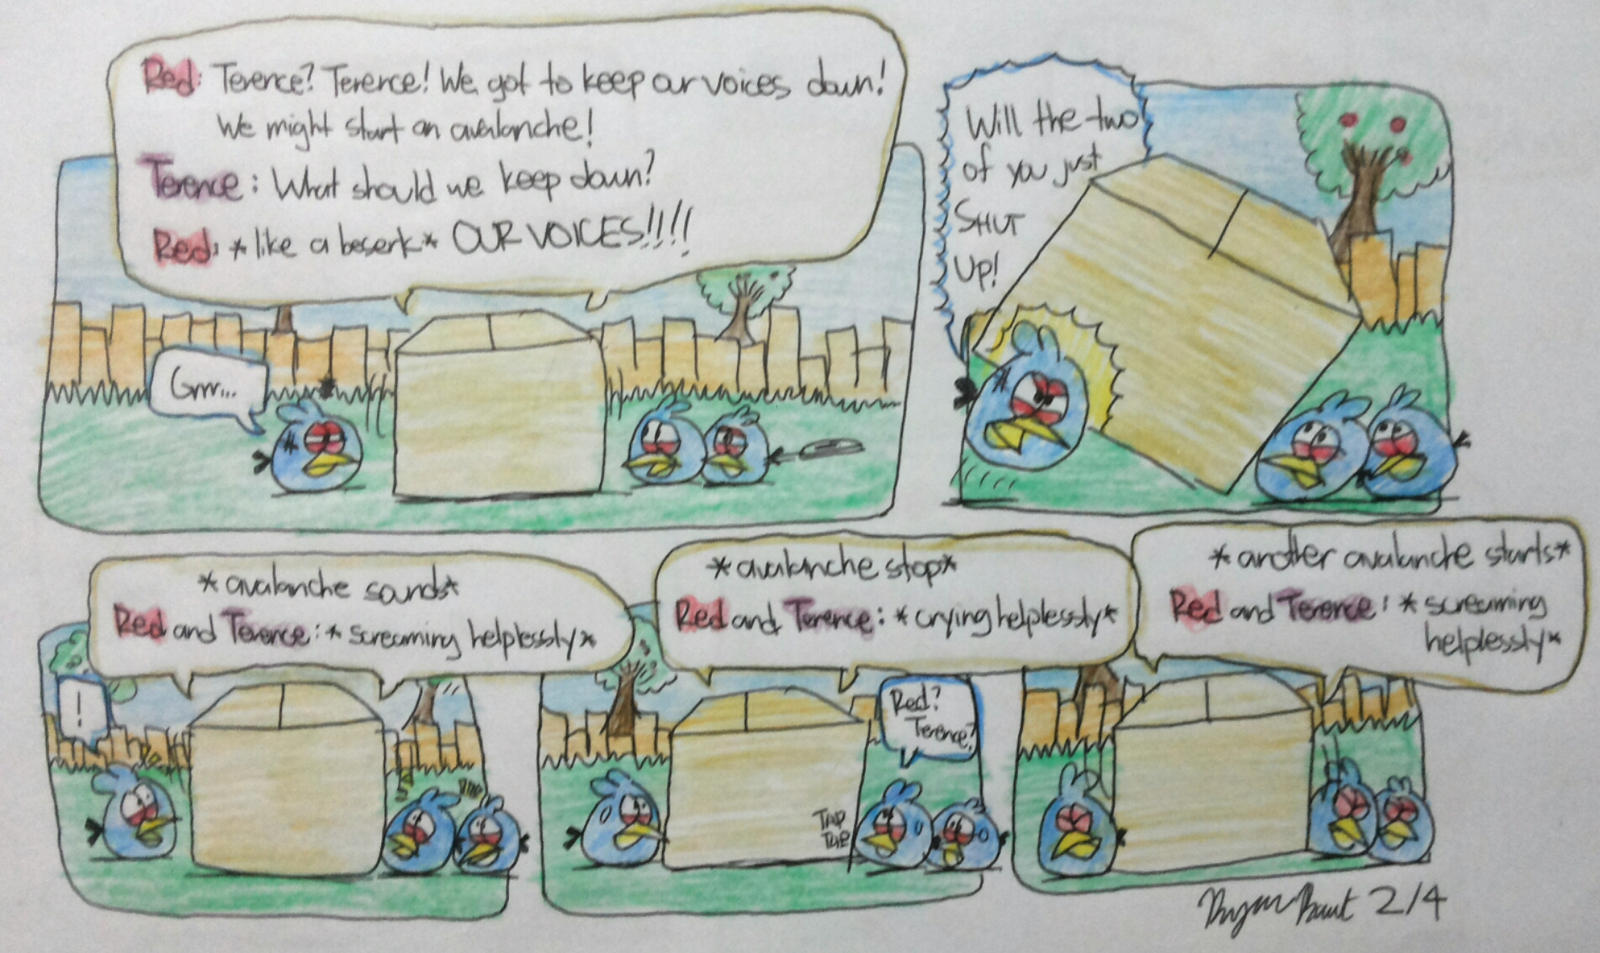 Angry Birds - It's about Imagination Part 2 of 4 by AngryBirdsStuff